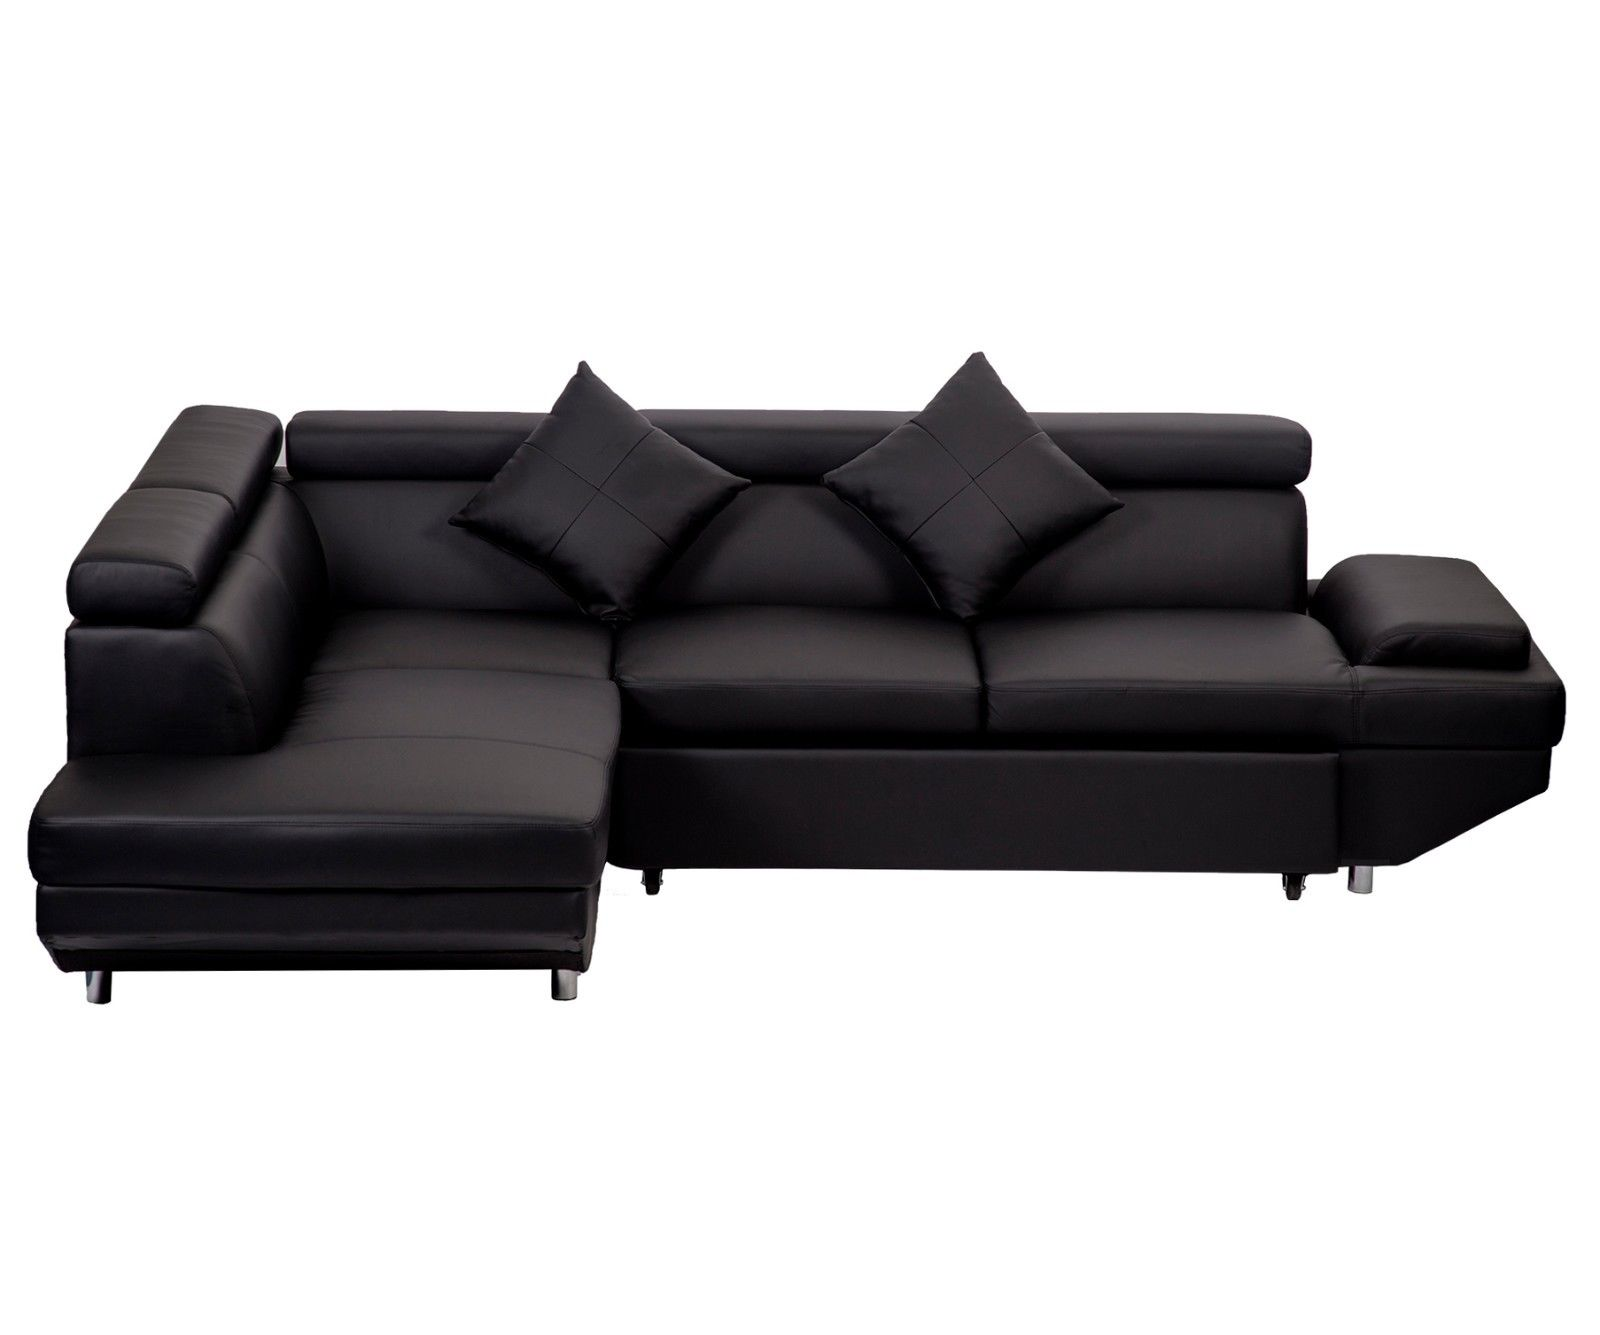 corner sofa leather ebay best reclining manufacturer new modern contemporary sectional bed